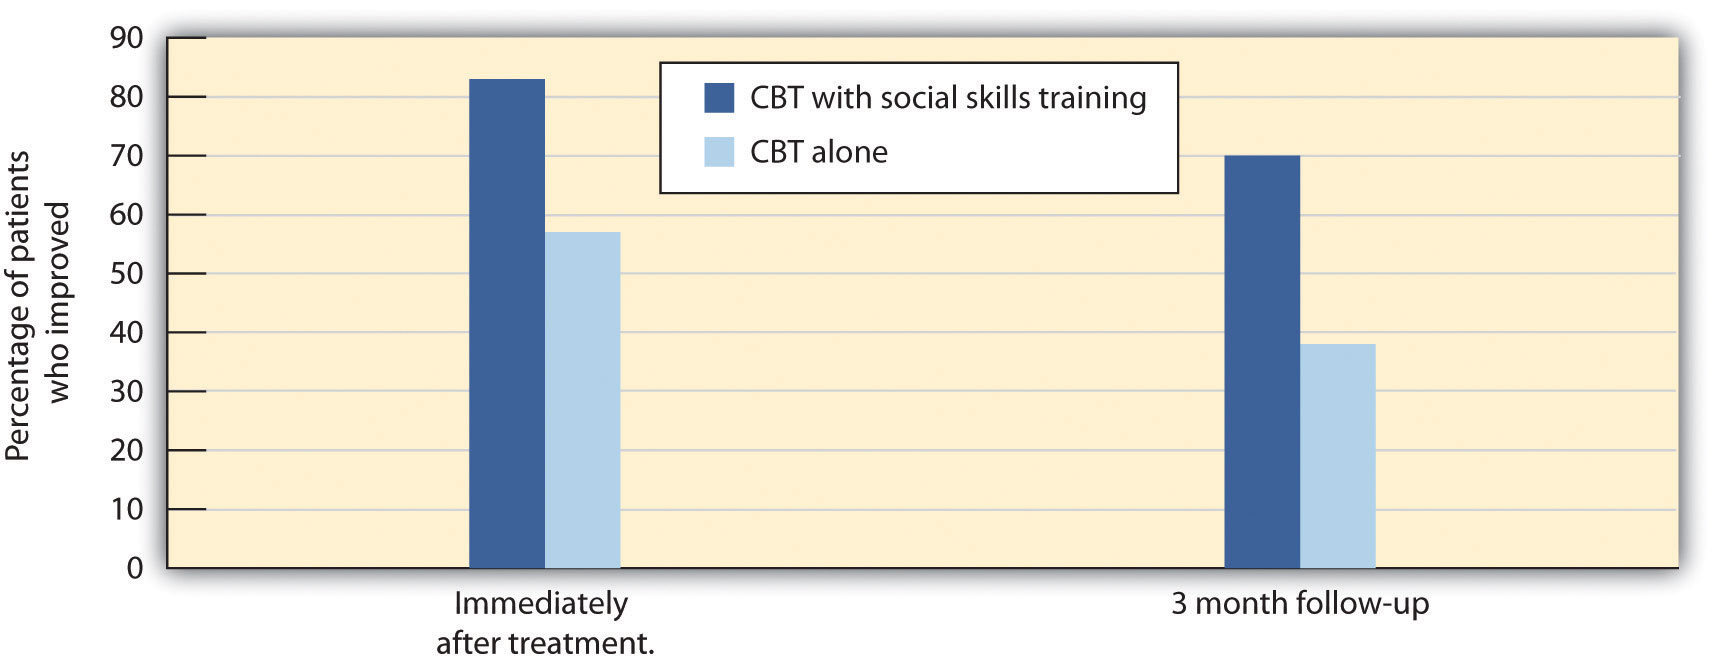 Herbert et al. (2005) compared the effectiveness of CBT alone with CBT along with social skills training. Both groups improved, but the group that received both therapies had significantly greater gains than the group that received CBT alone.